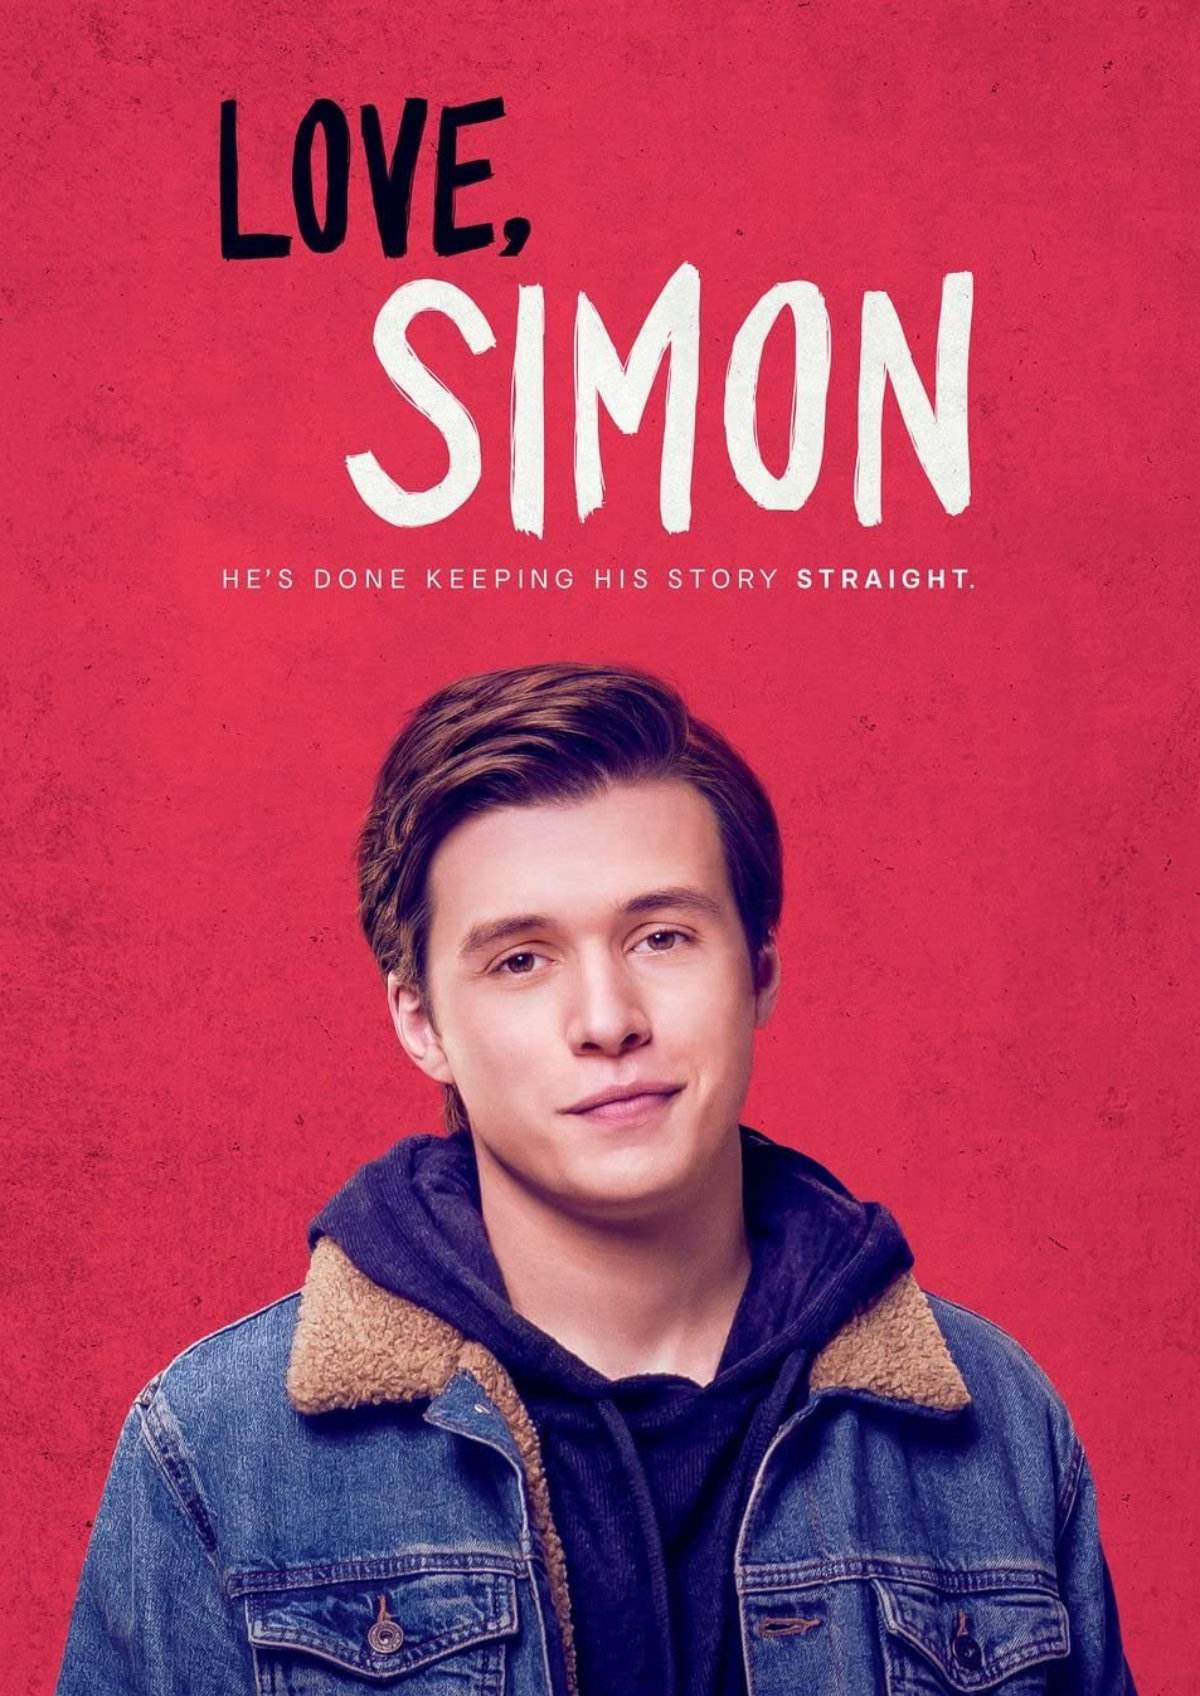 'Love, Simon' movie poster